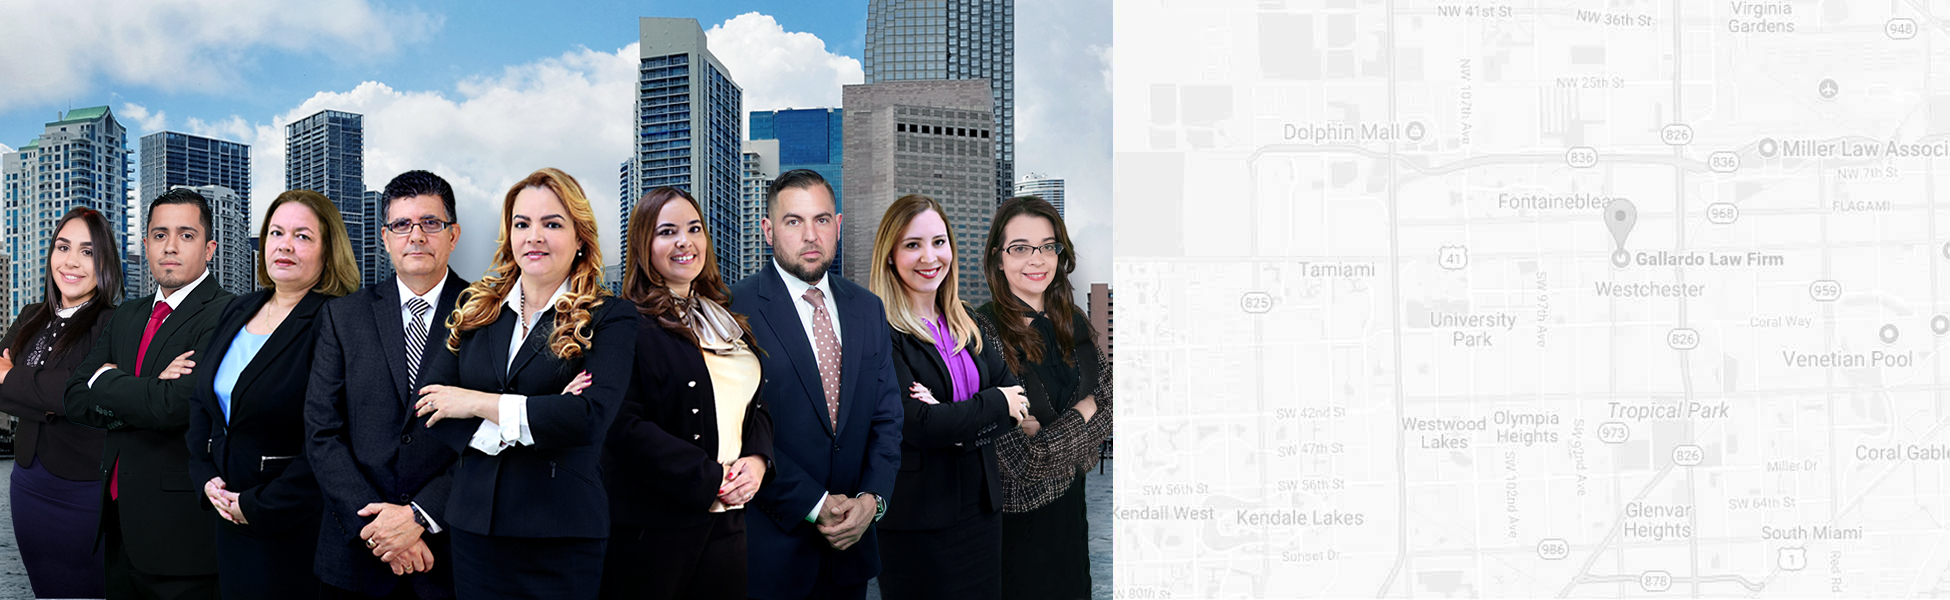 Contact Gallardo Law Firm